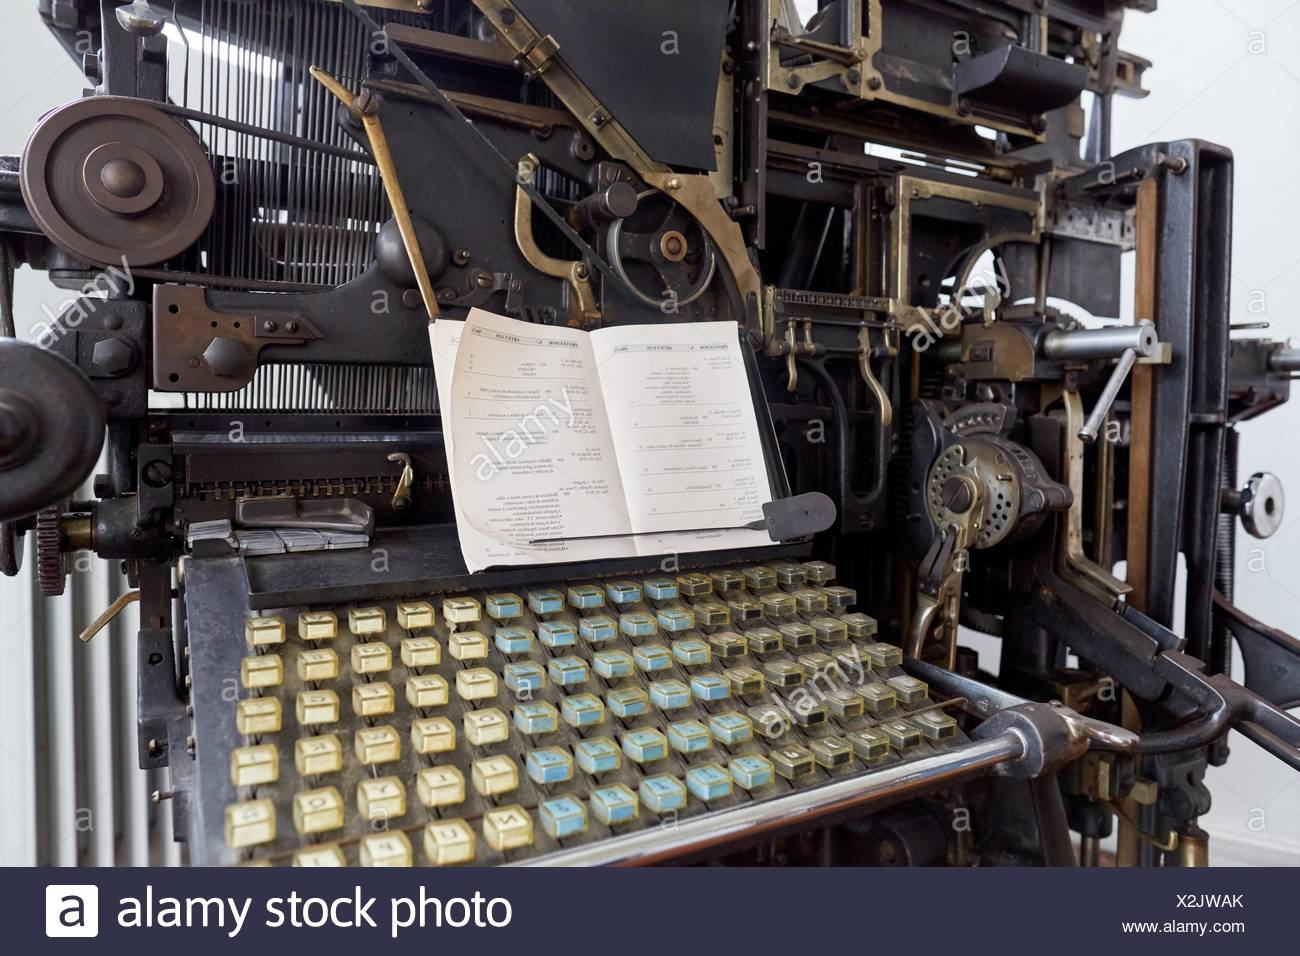 Old typesetting machine, typography - Stock Image